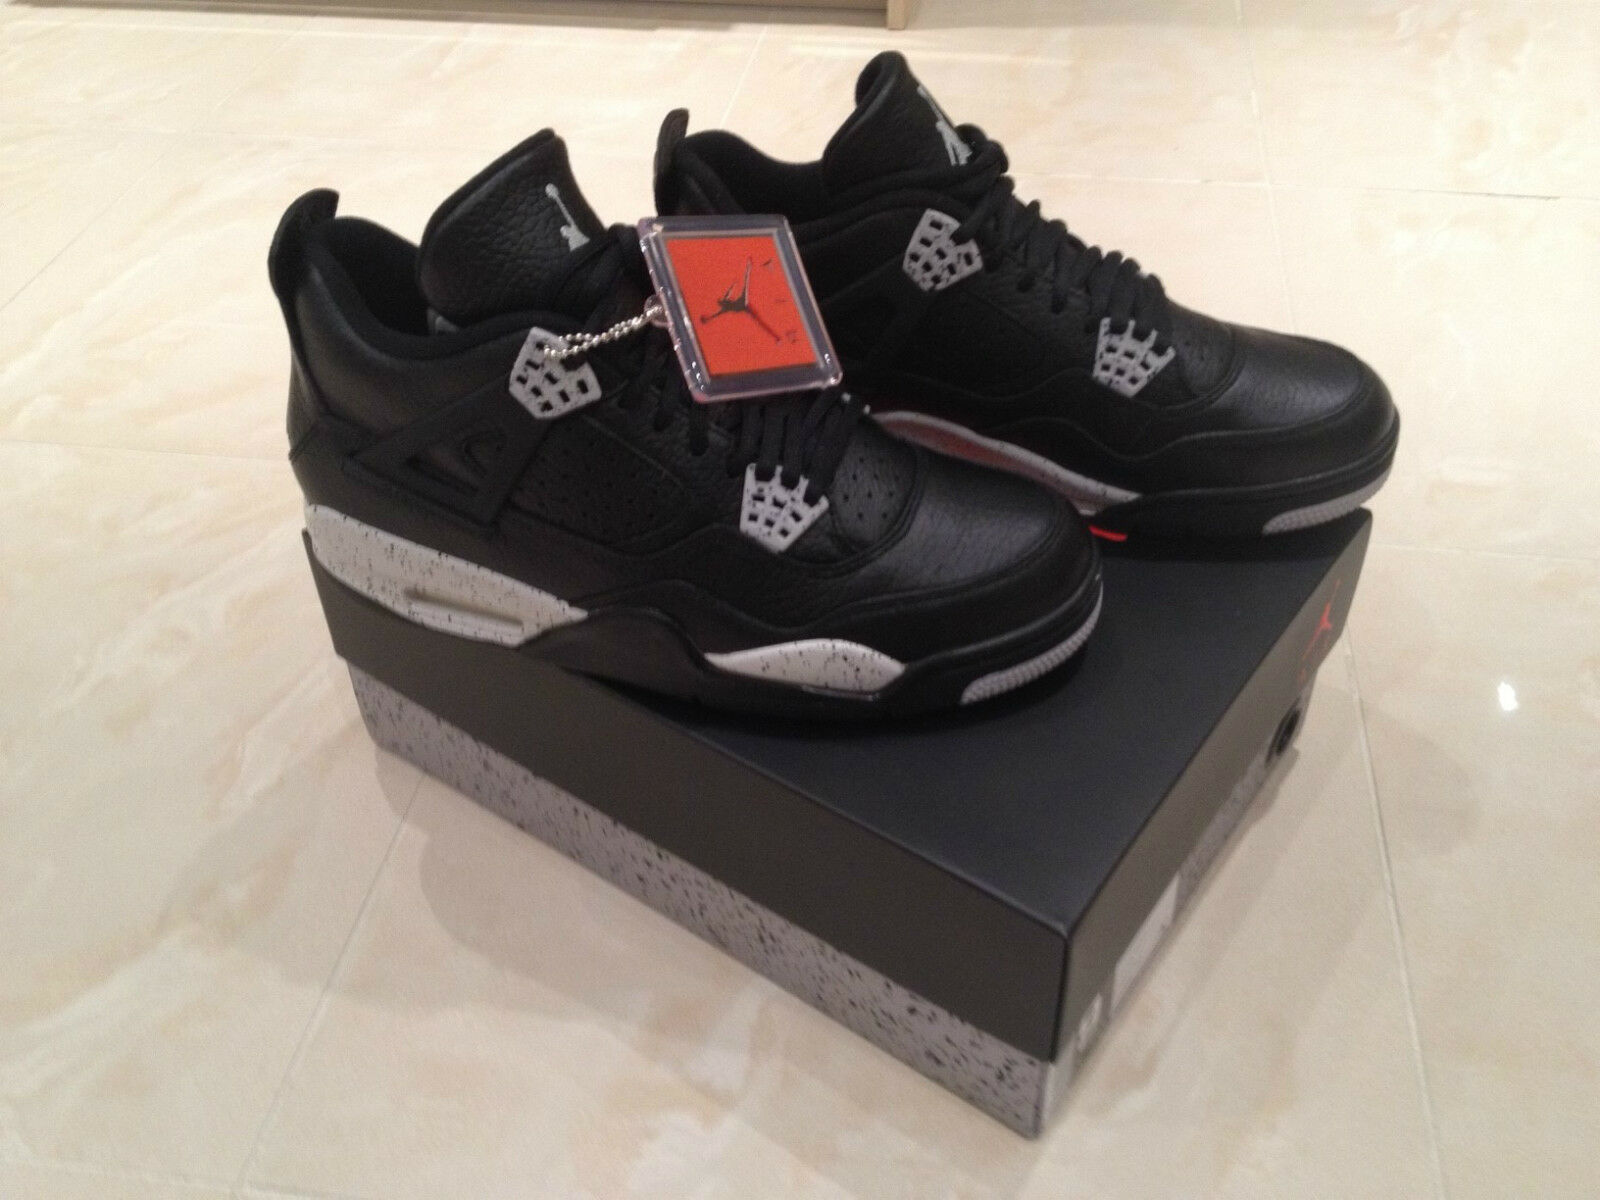 2015 NIKE AIR JORDAN 4 RETRO OG TECH GREY NEU OREO ALL SIZES 5-12.5 NEU GREY 7 7.5 9.5 10 bfa327